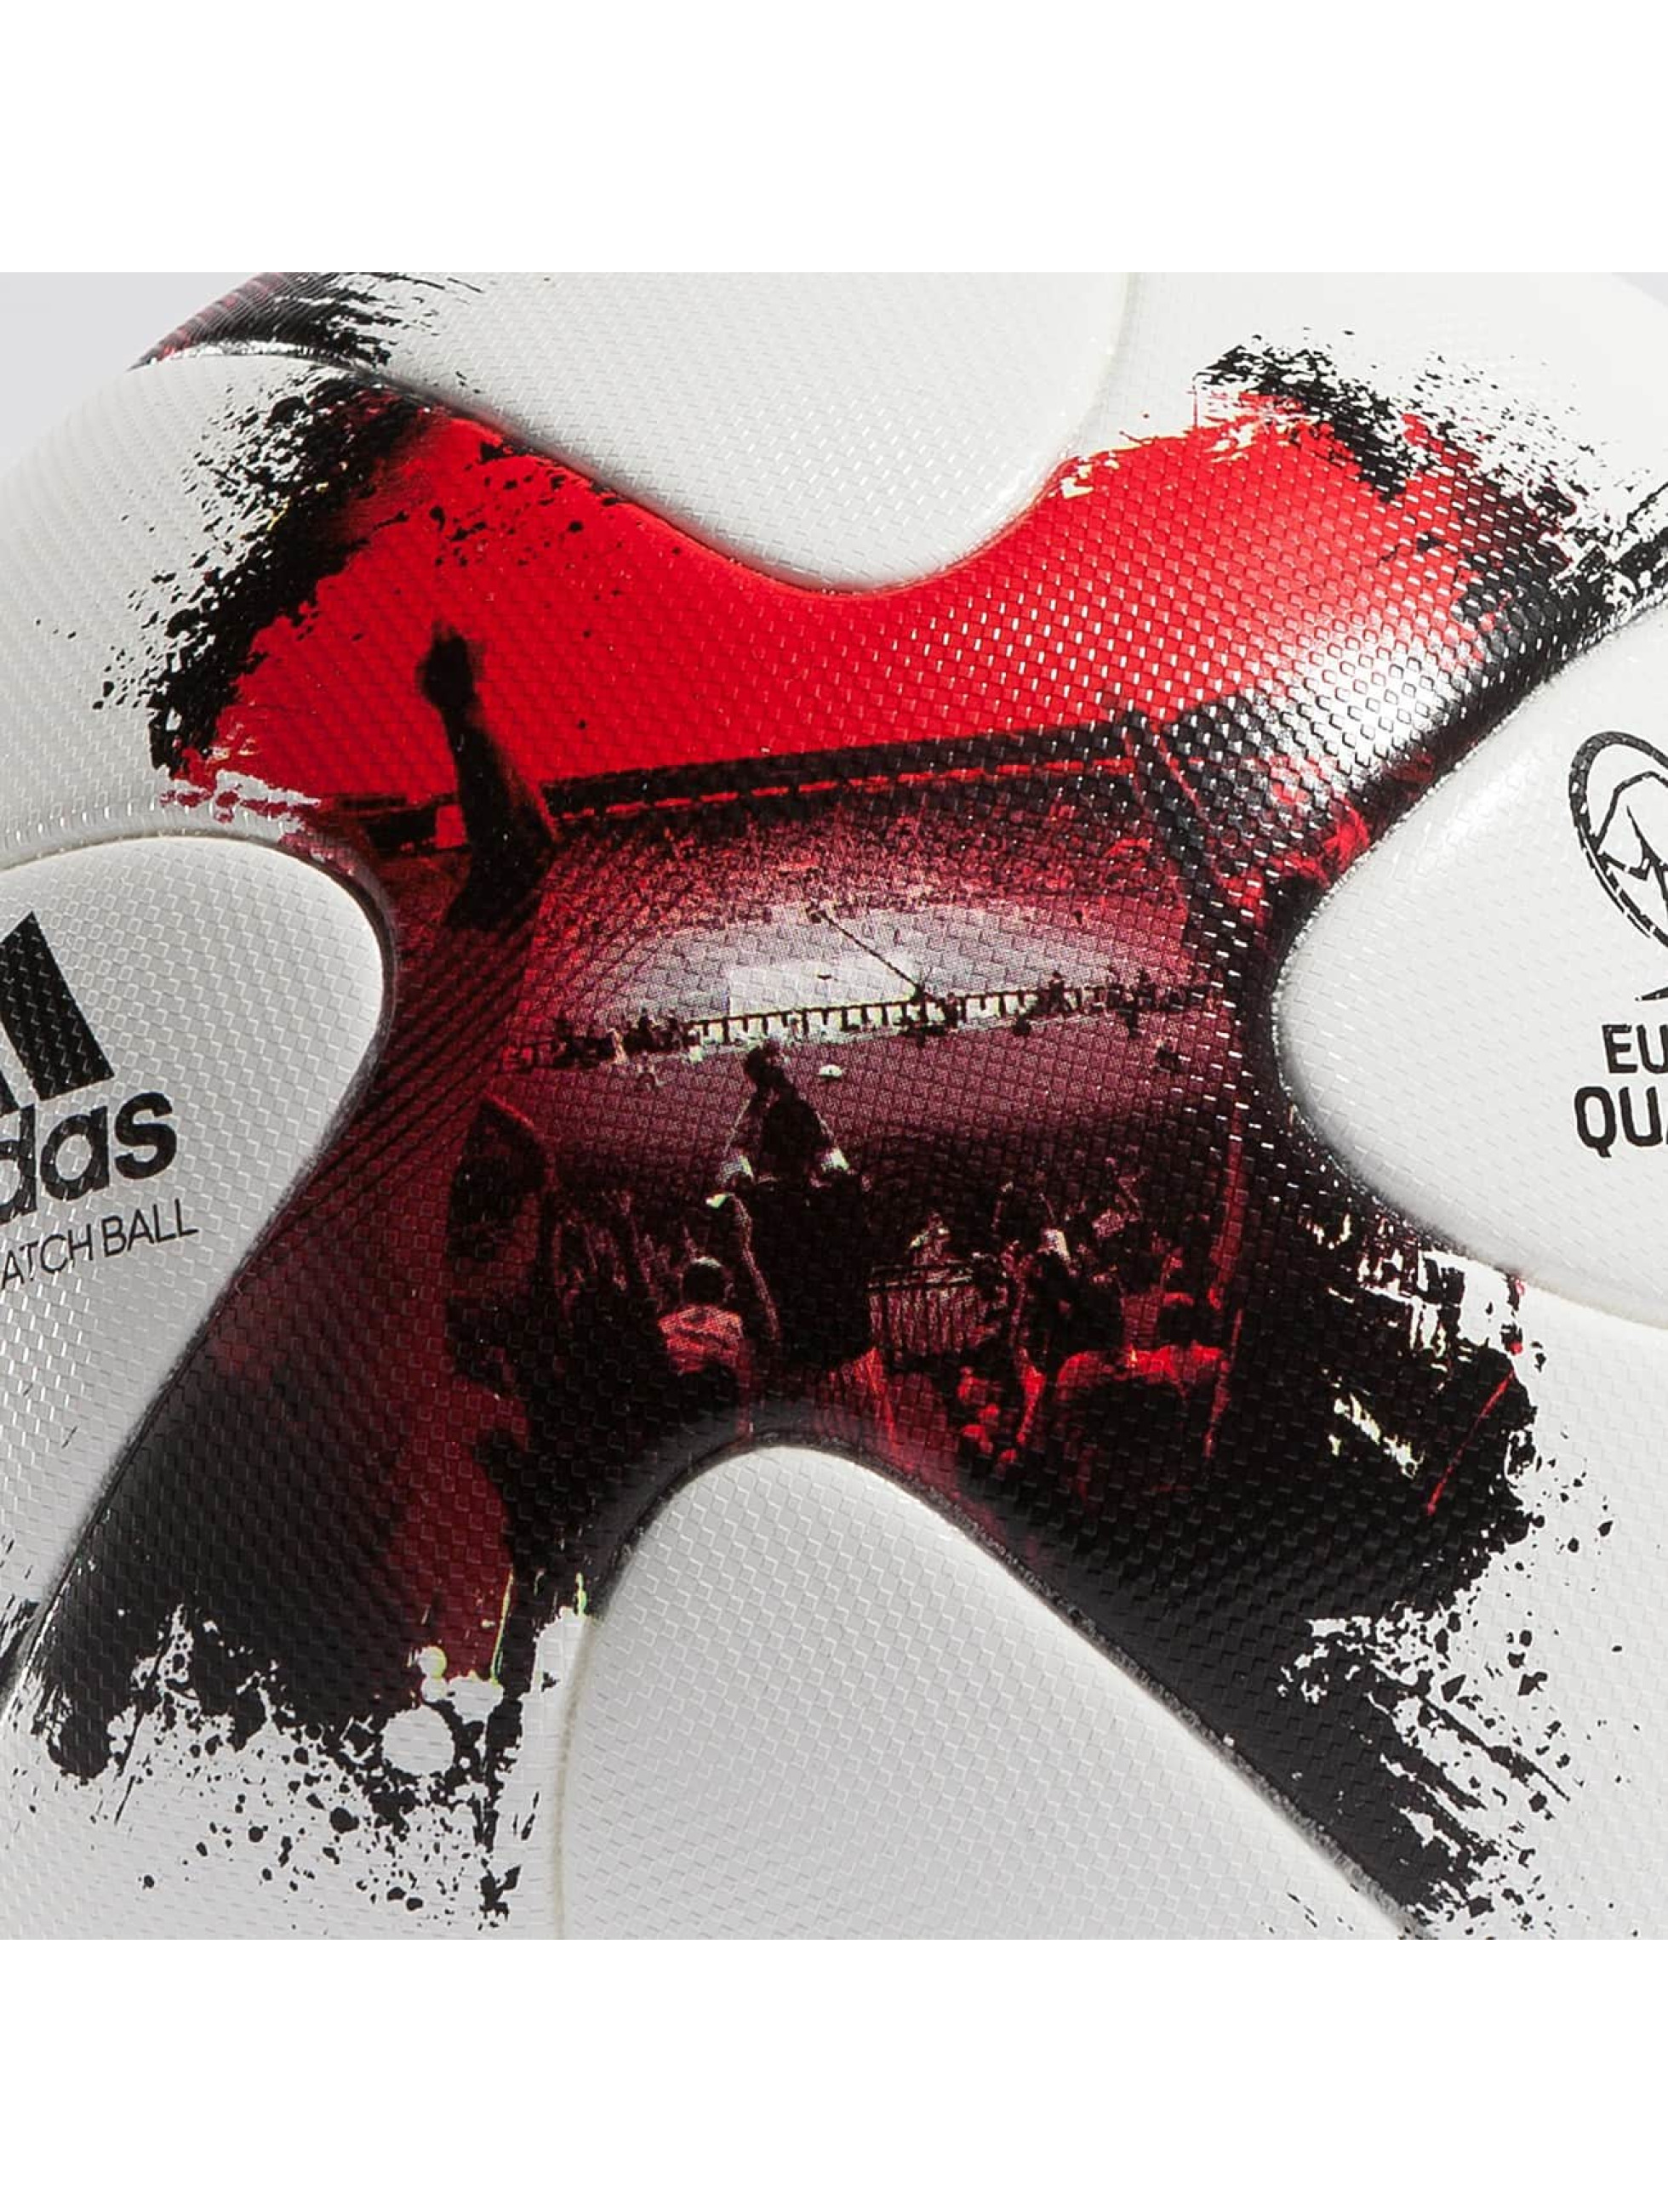 adidas Performance bal European Qualifiers Offical Match Ball wit